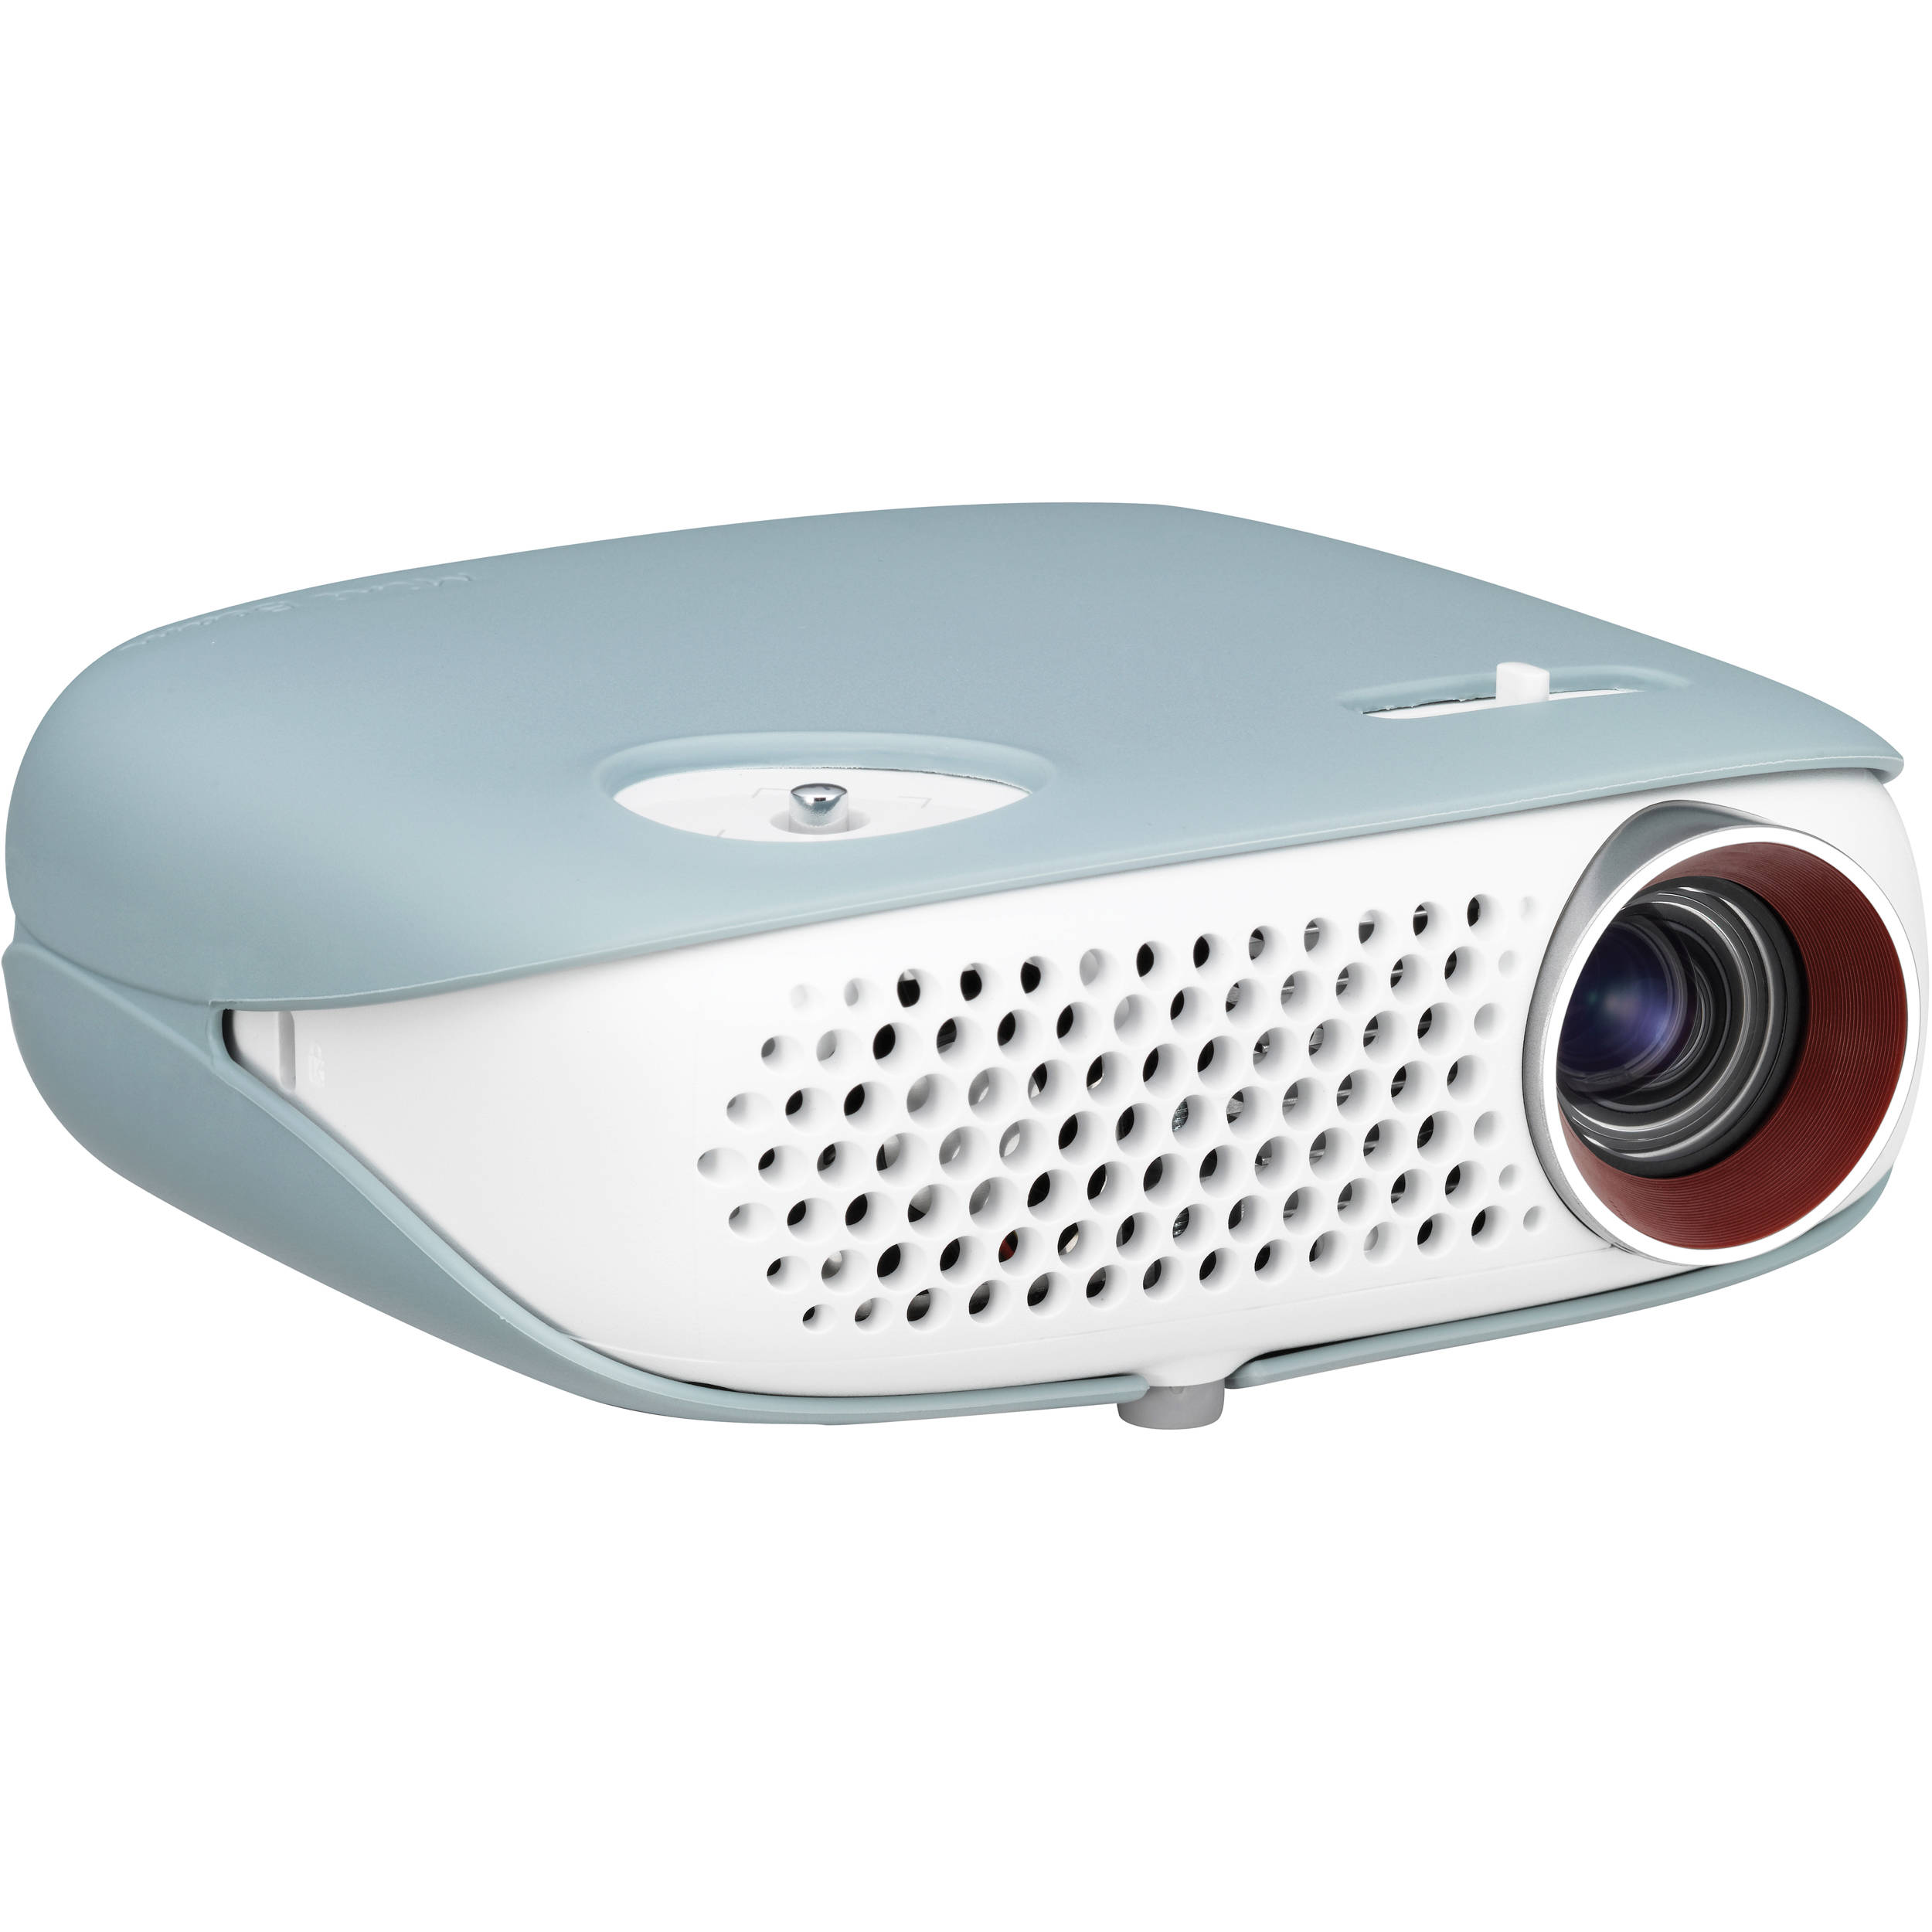 Lg pw800 portable hd led projector pw800 b h photo video for Mirror hd projector